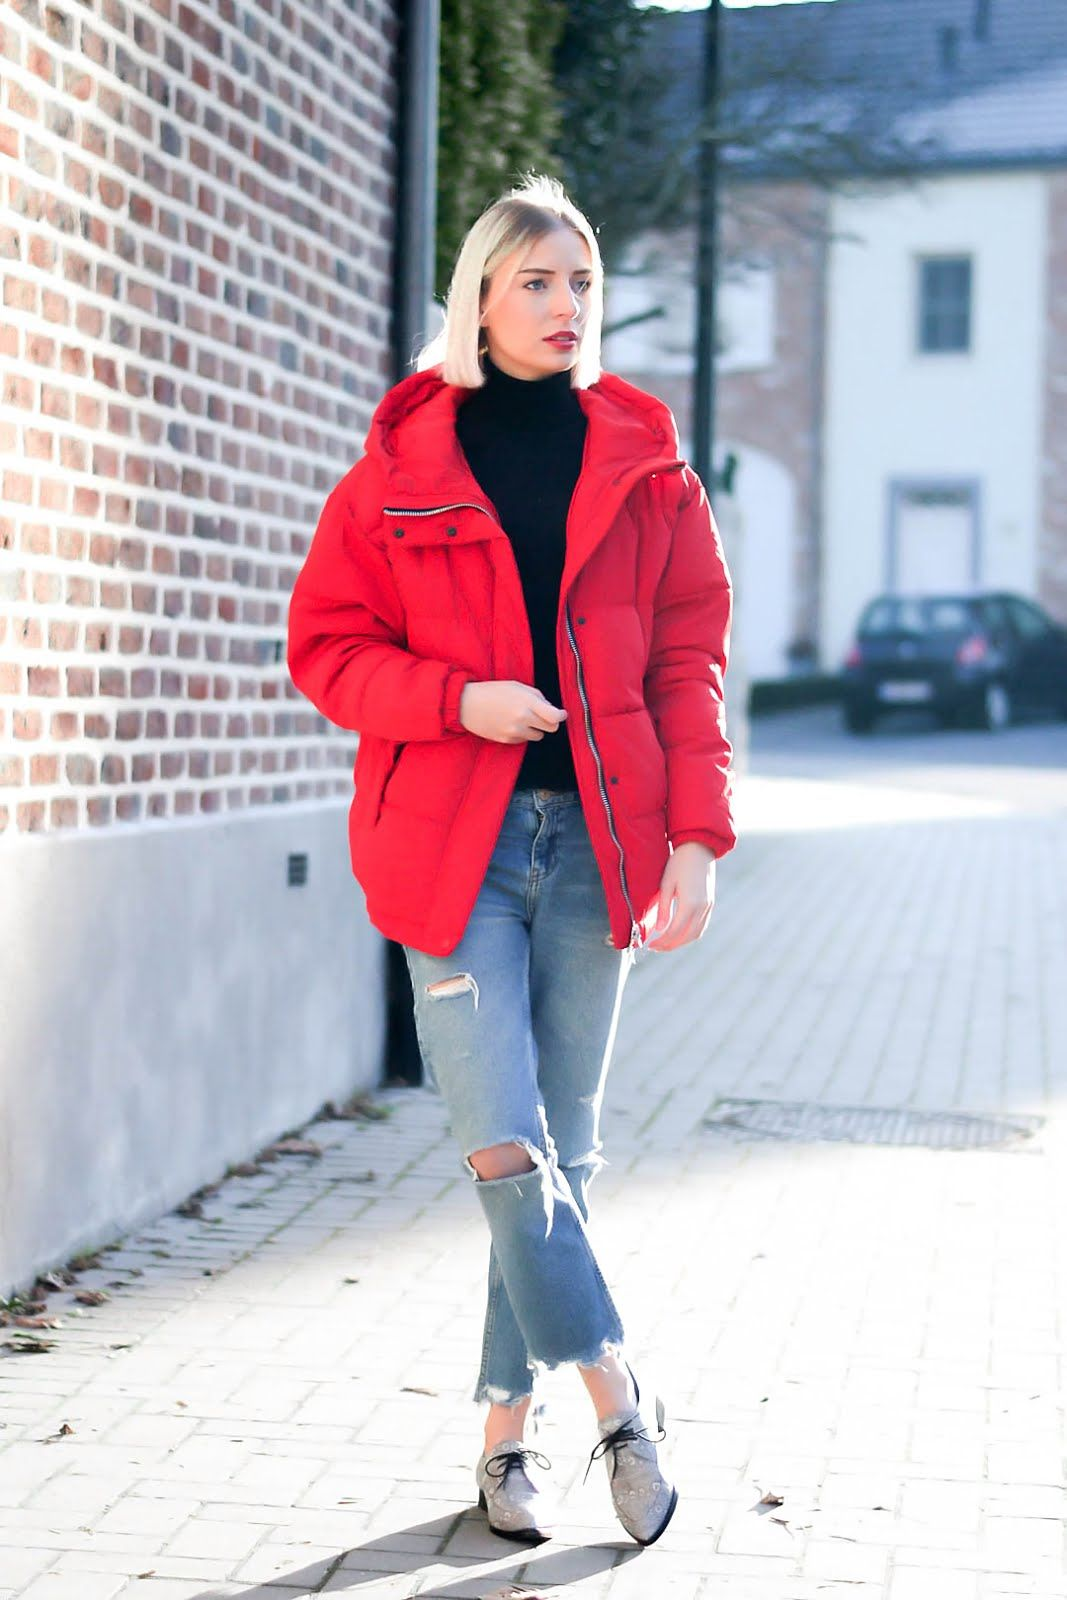 Red puffer jacket Ropa, Invierno